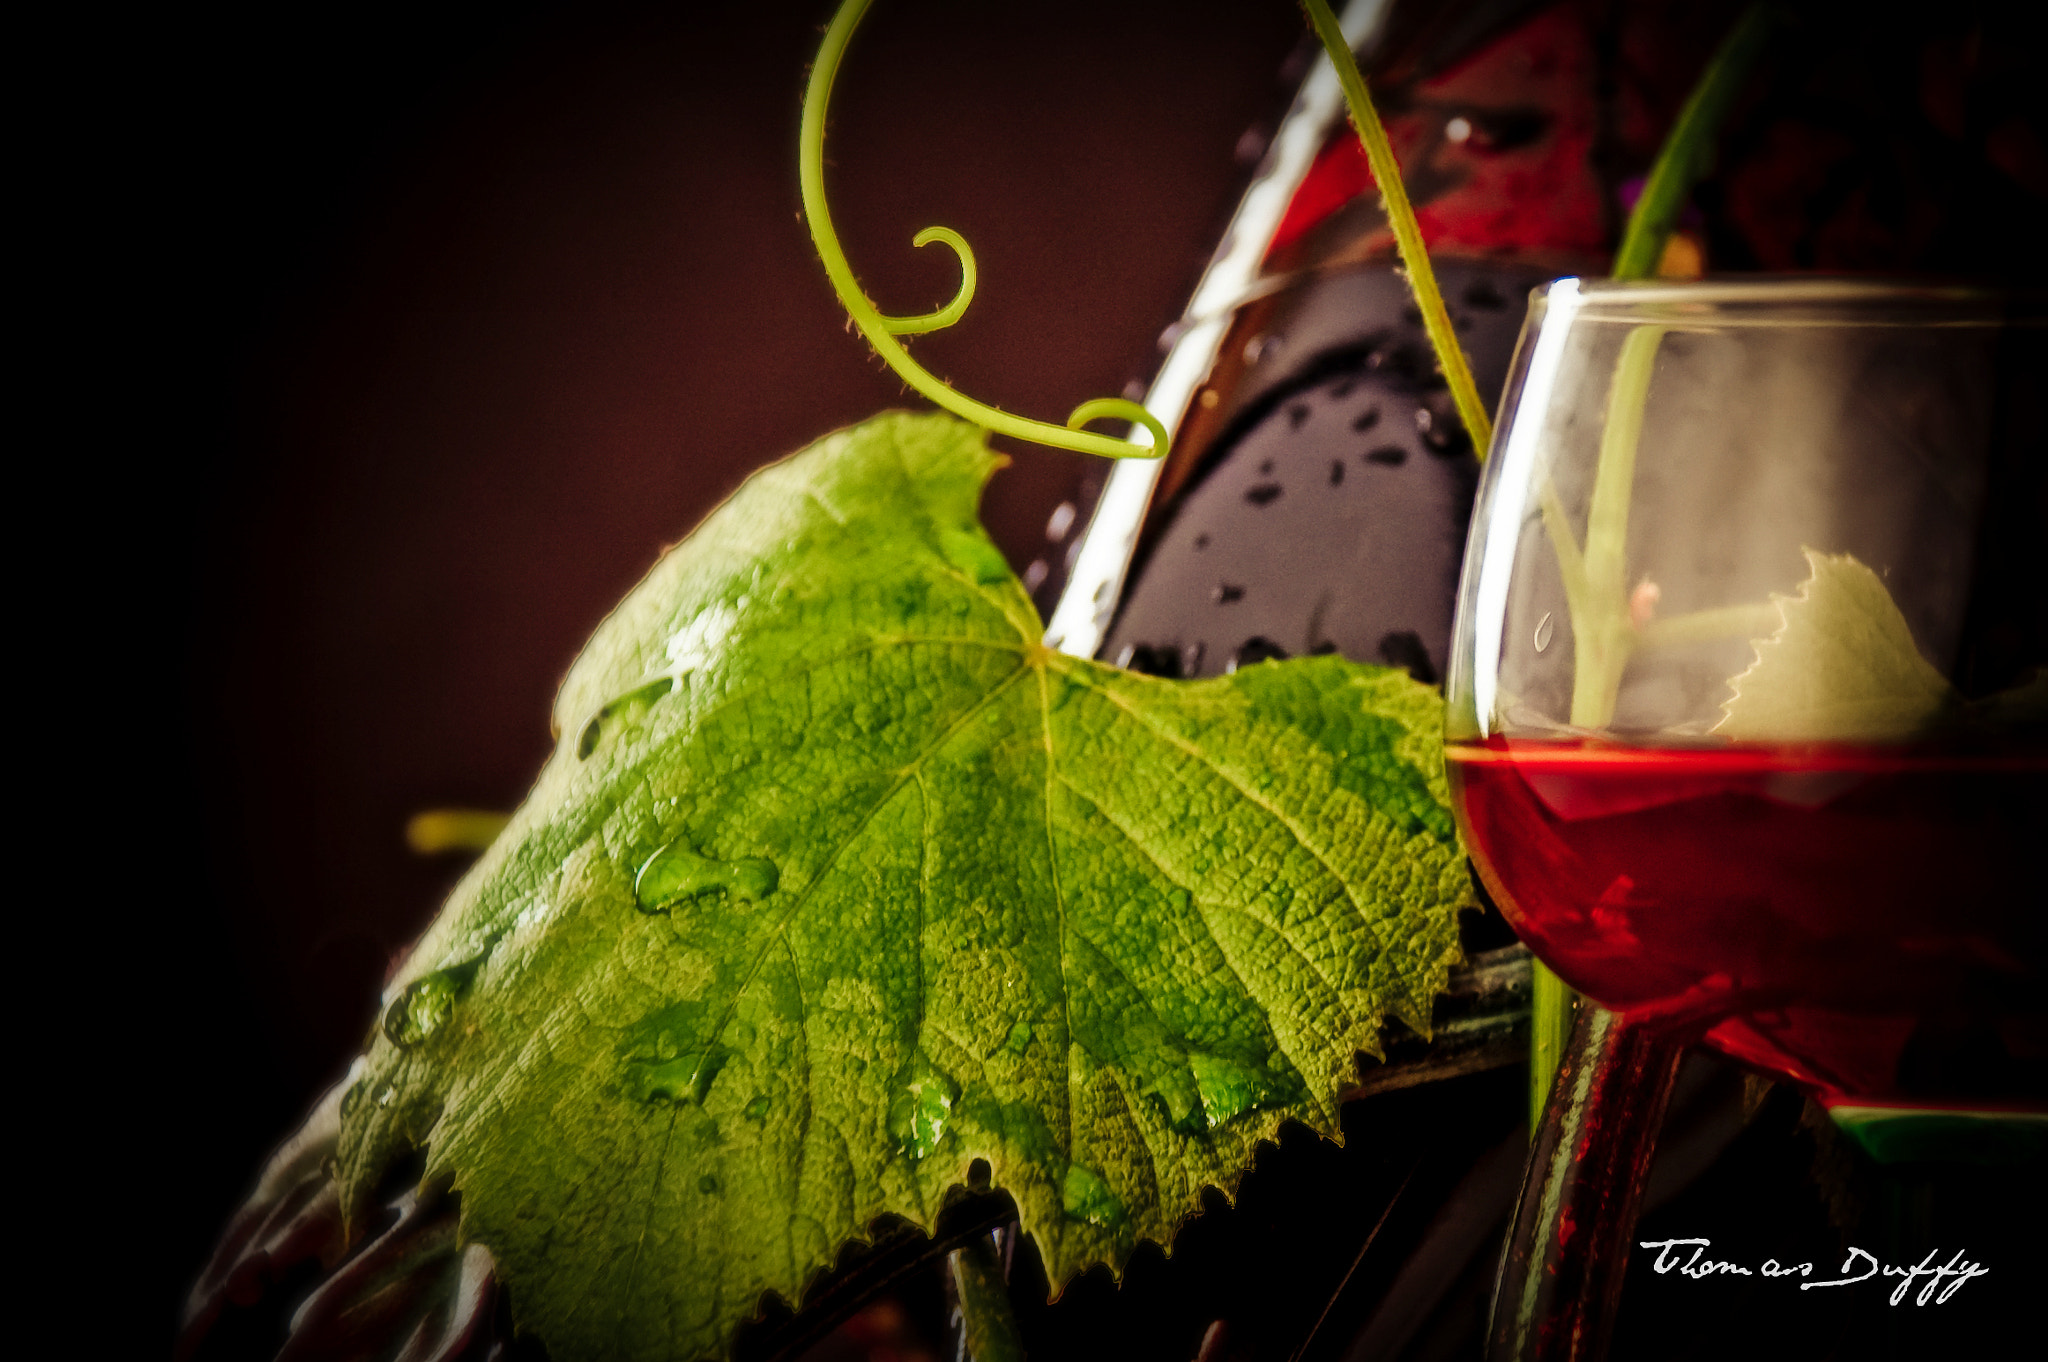 Photograph Red Wine by Thomas Duffy on 500px